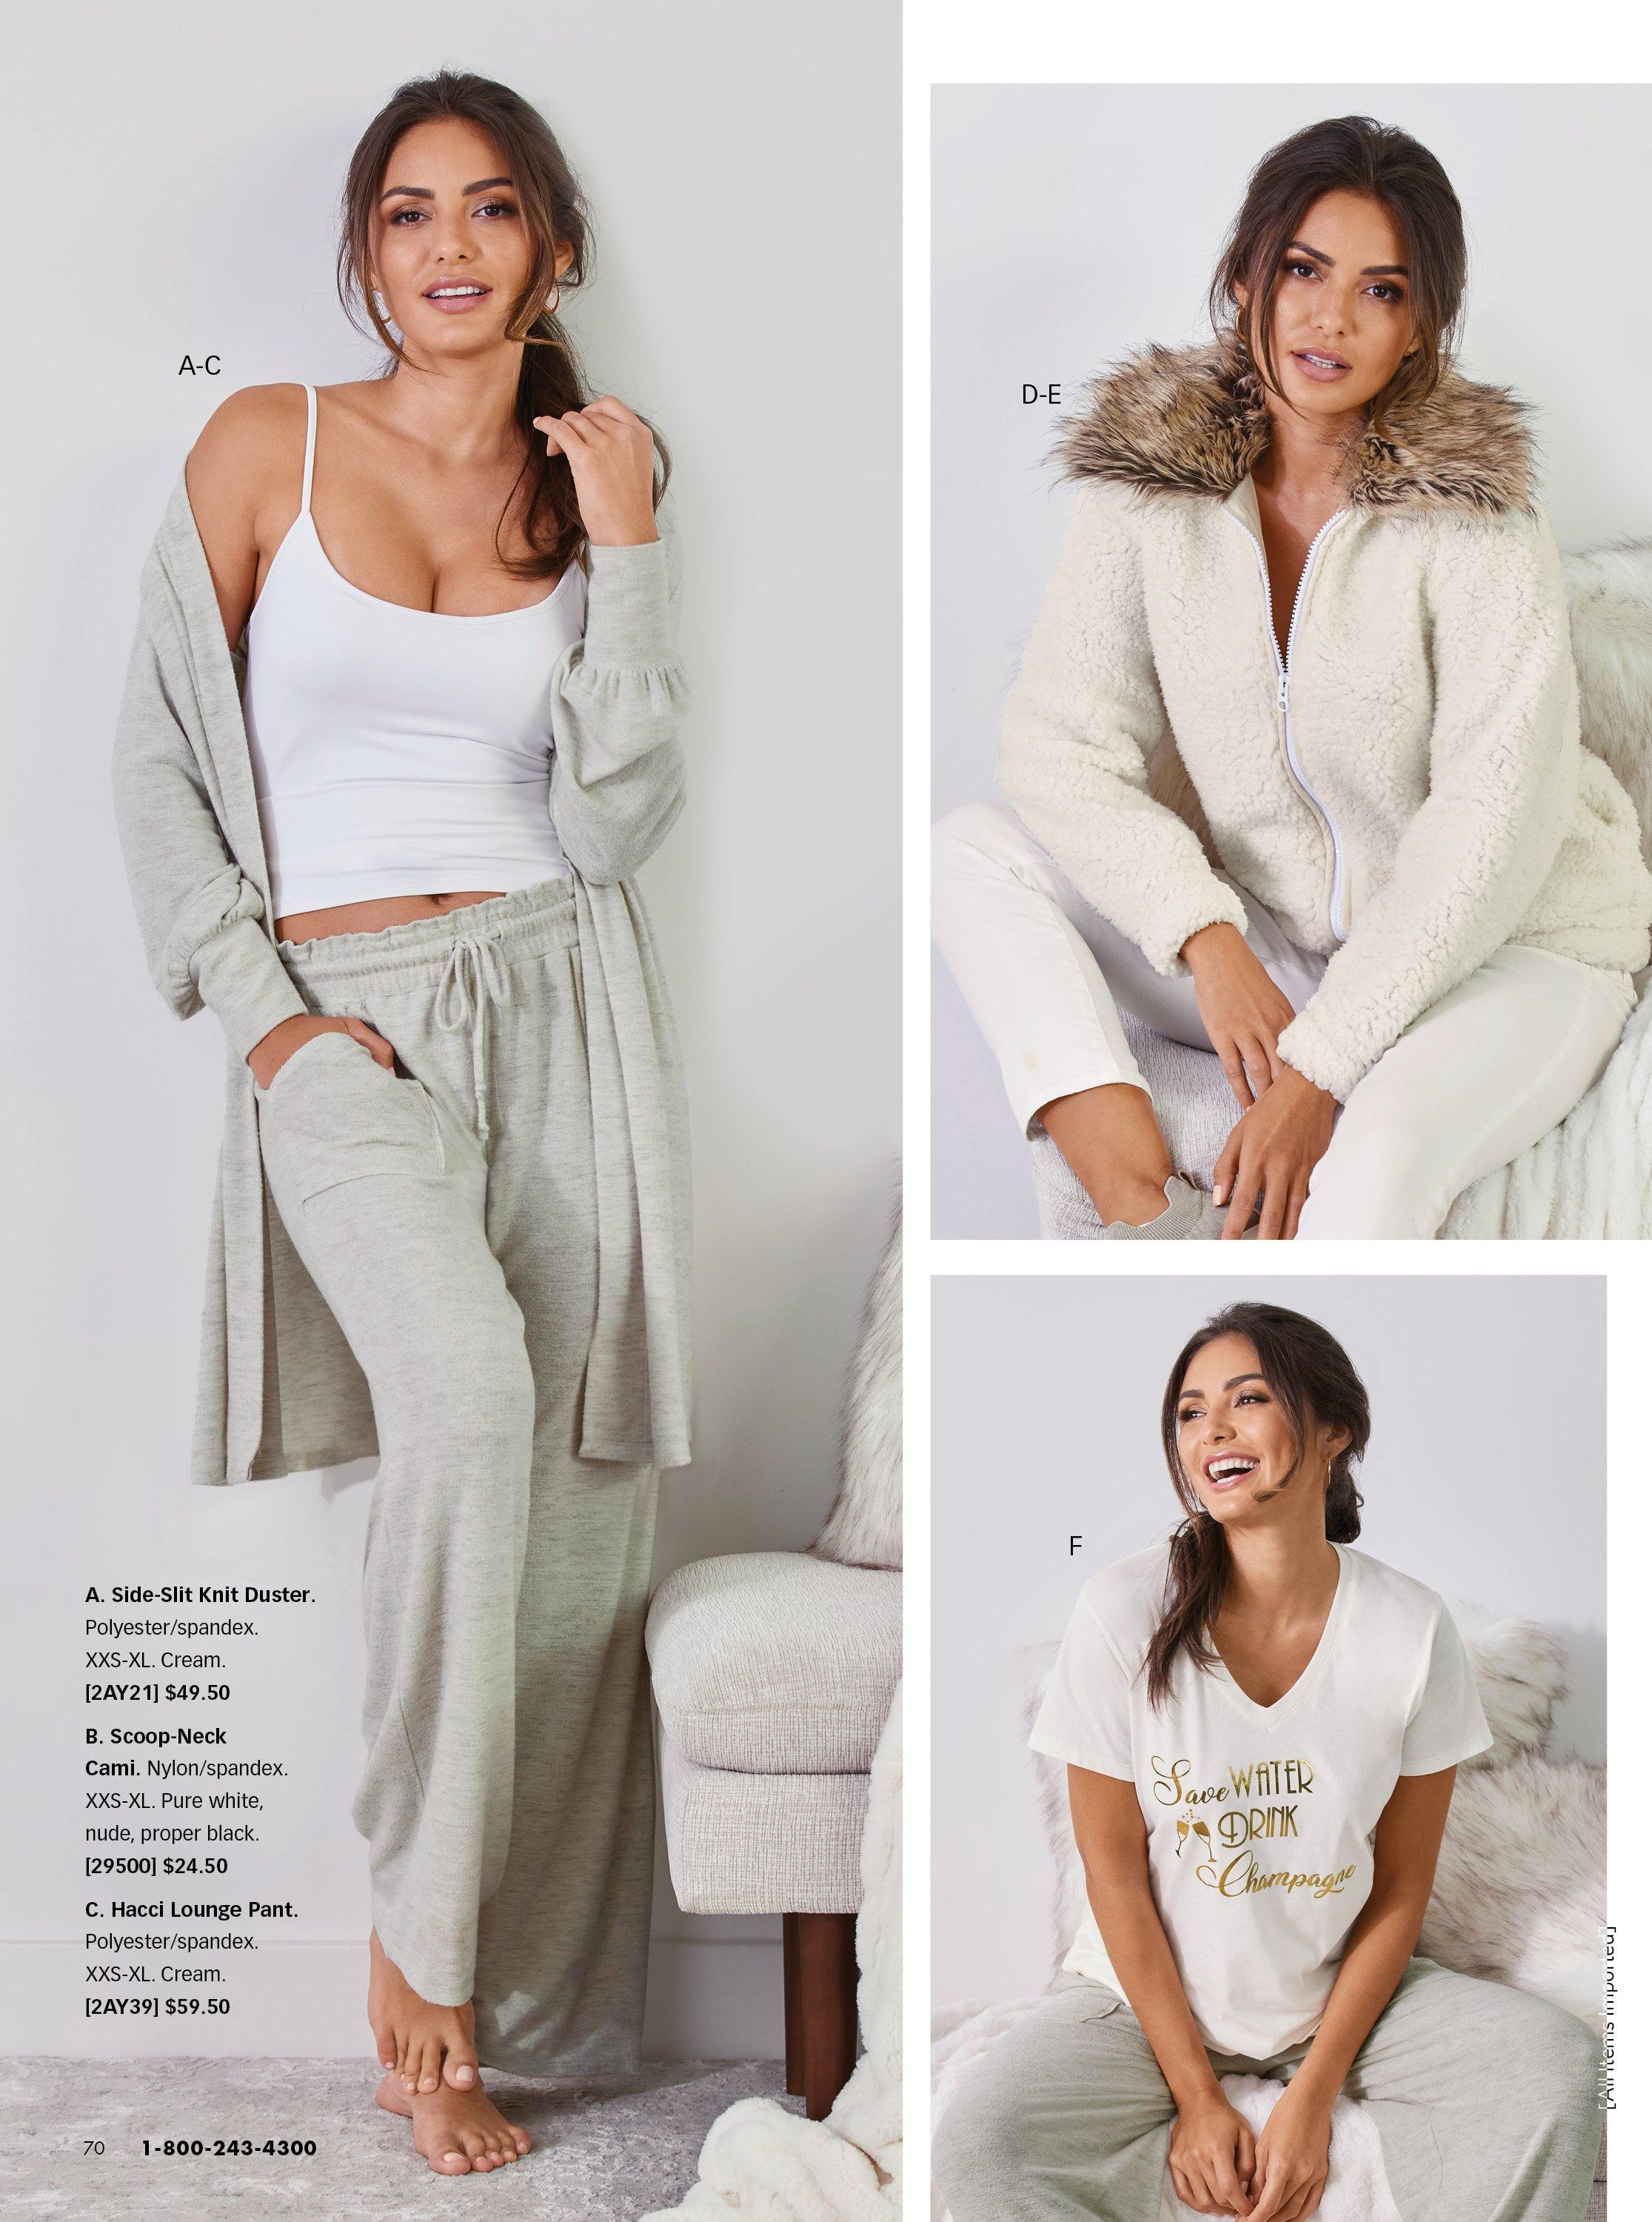 left model wearing a gray duster, gray lounge pants, and a white tank top. top right model wearing a white faux fur zip-up sweater. bottom right model wearing a graphic tee and gray lounge pants.